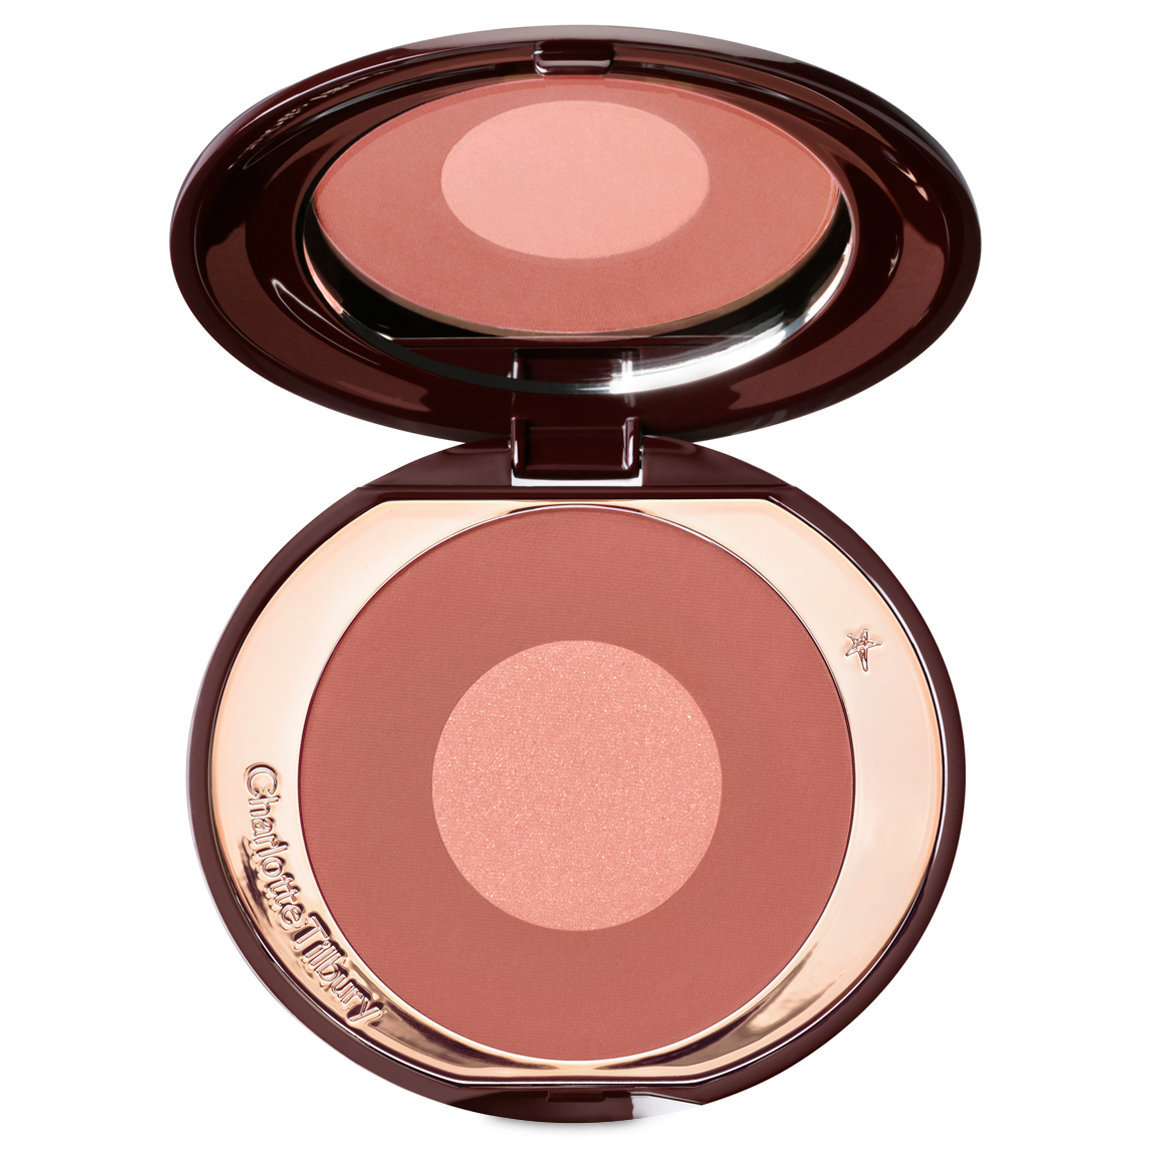 Charlotte Tilbury Cheek To Chic Pillow Talk Intense product swatch.